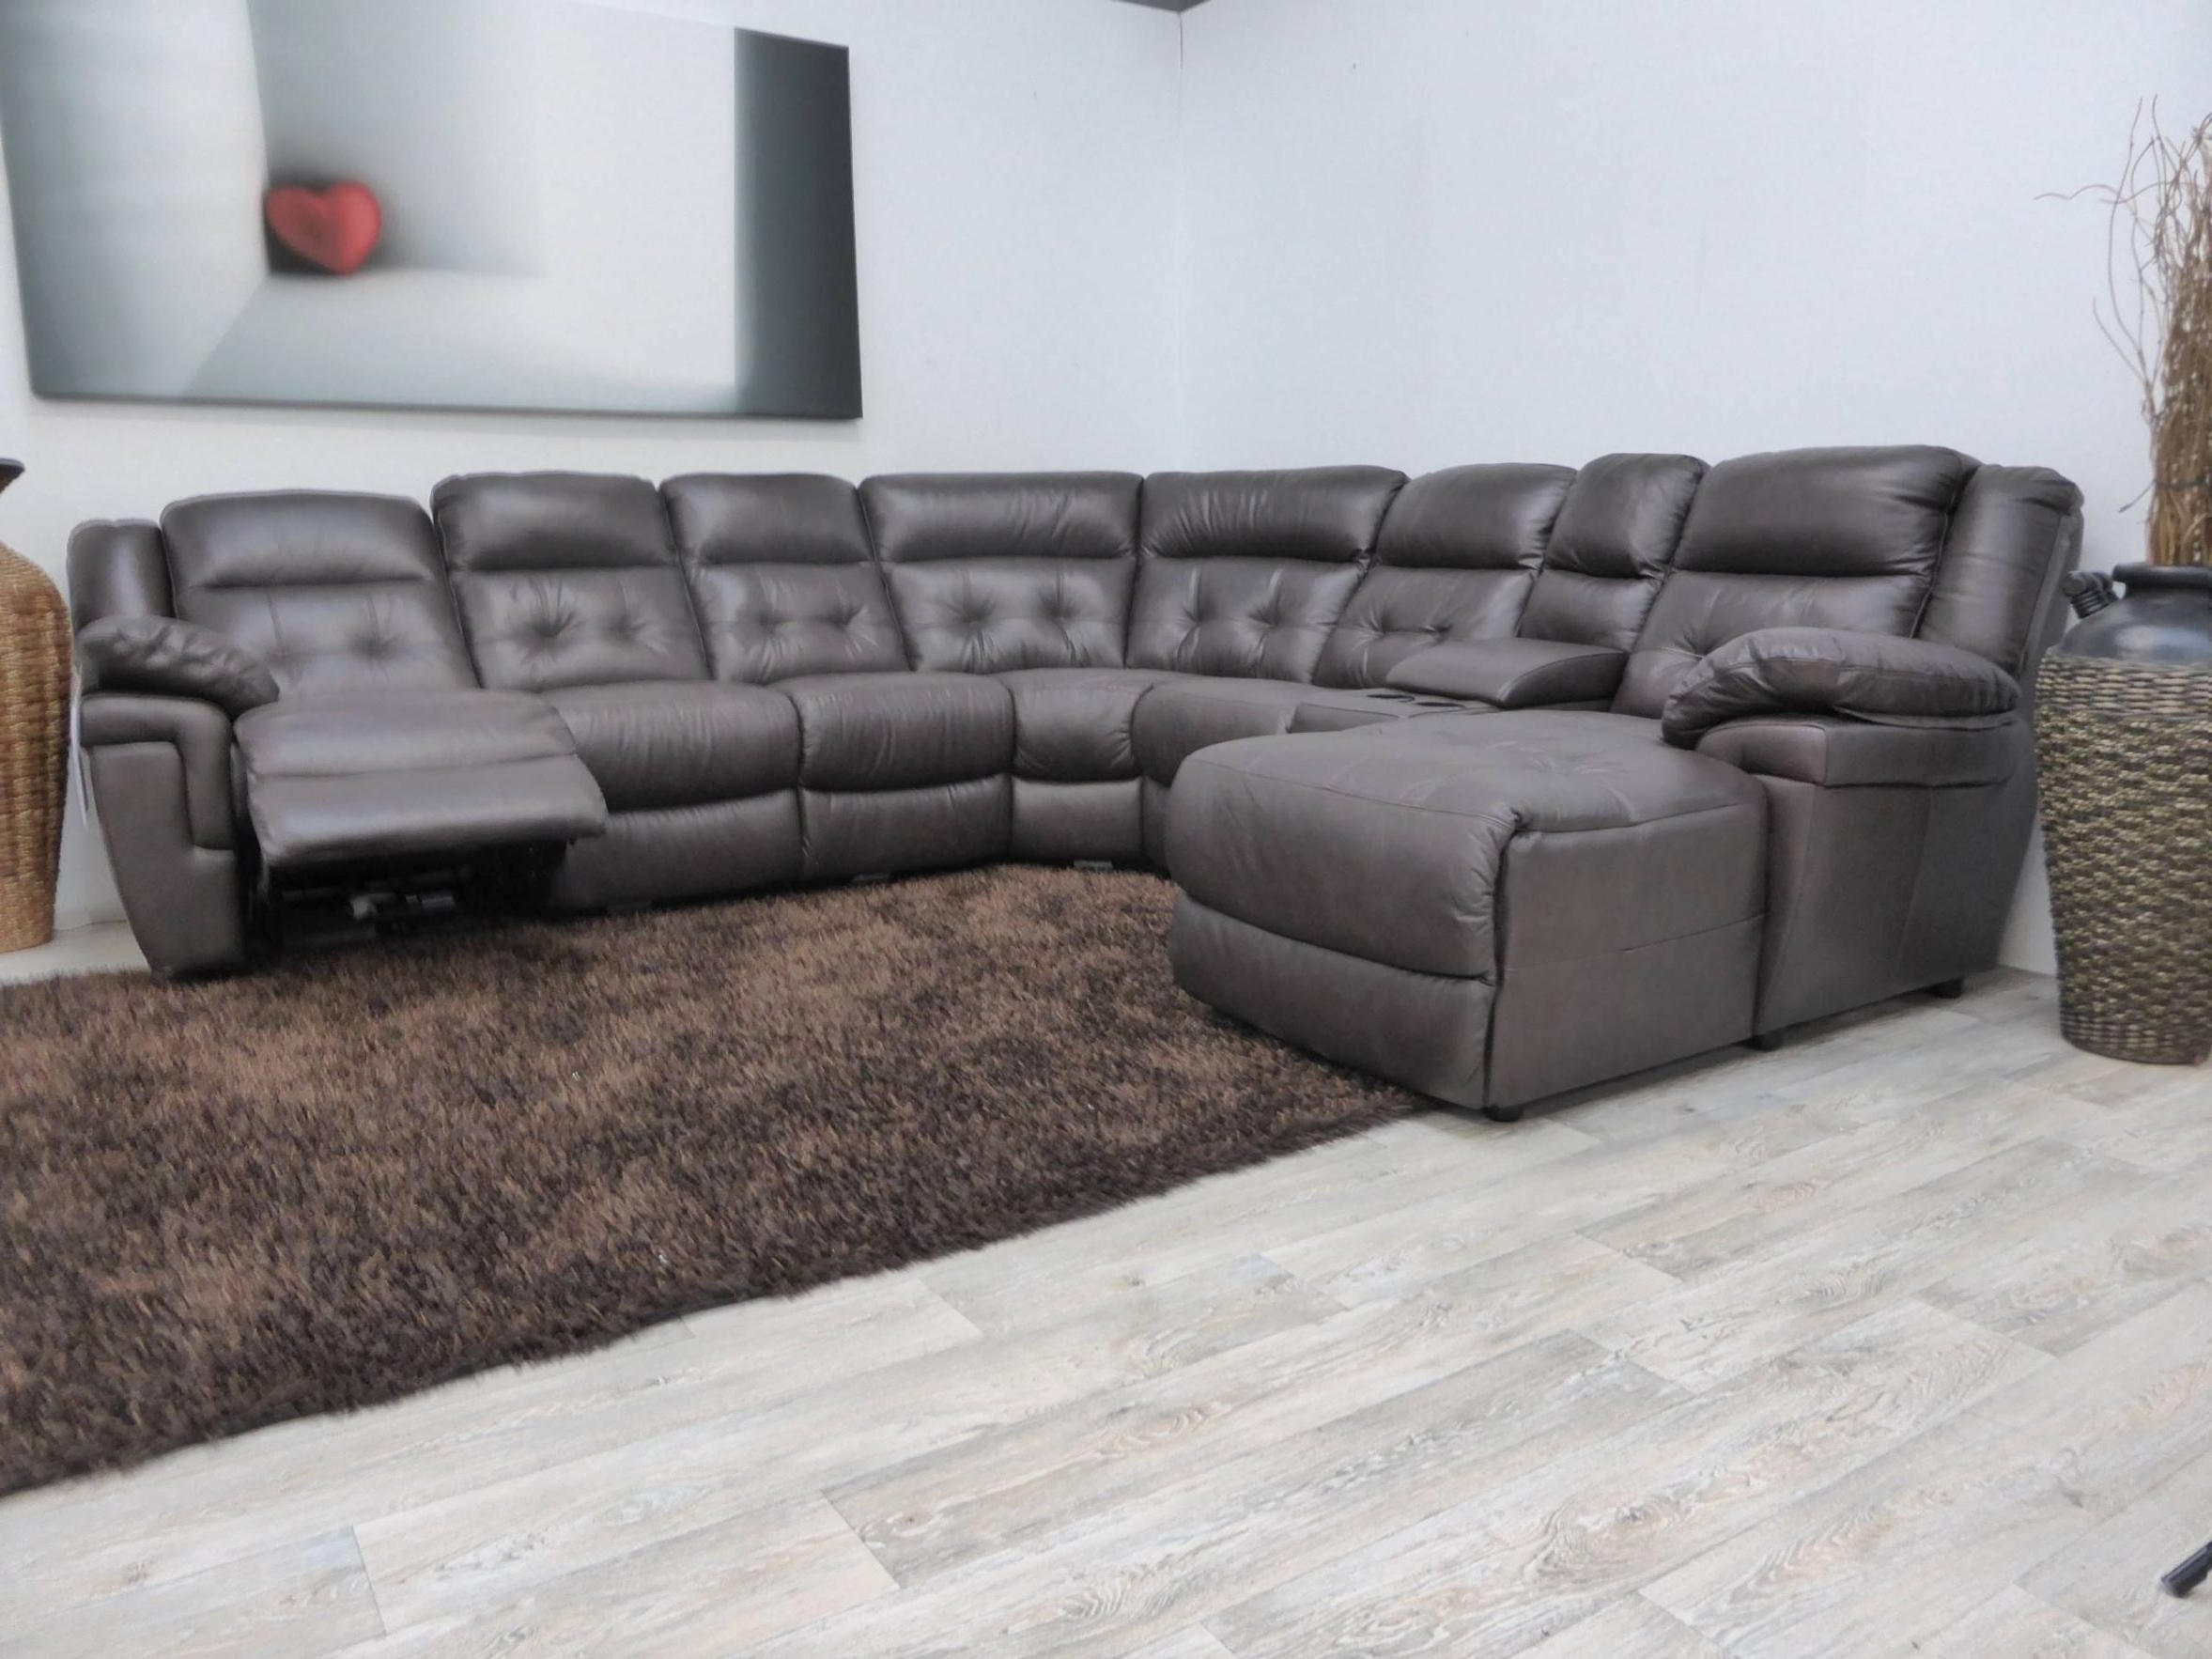 Sectional Sofas At Craigslist Pertaining To Most Recent Craigslist Sectional (View 8 of 15)